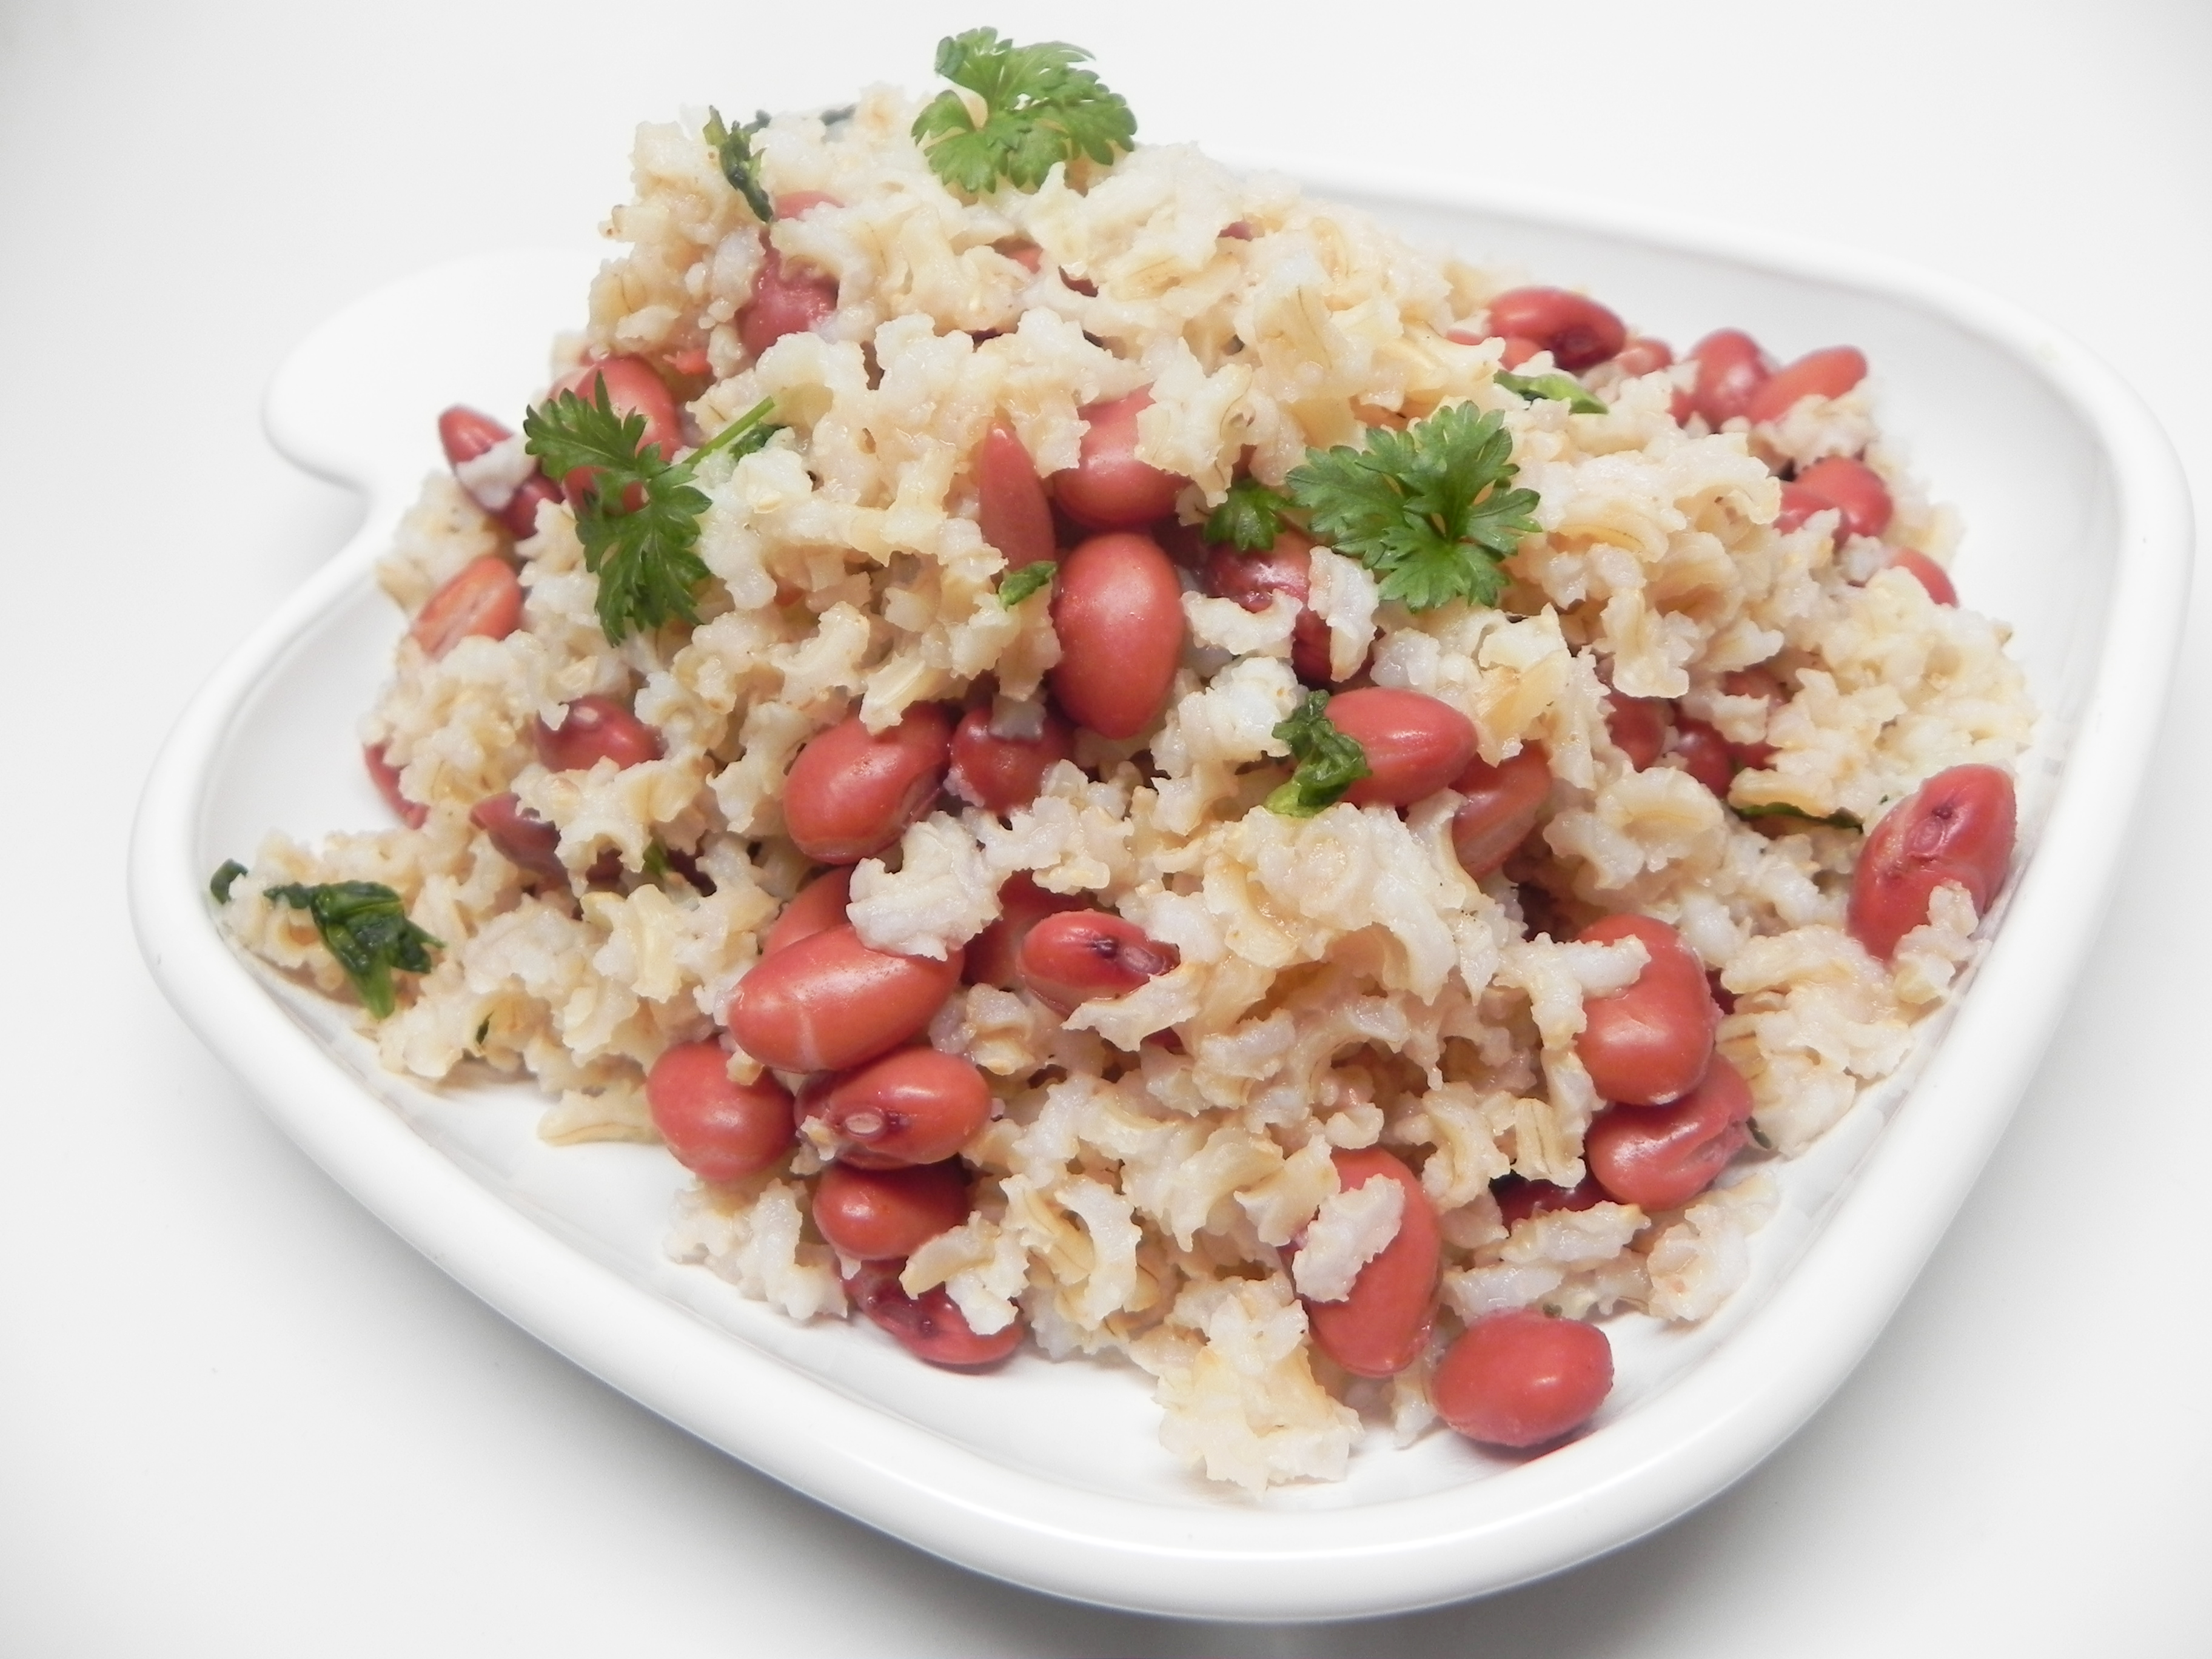 Cajun Meatless Red Beans and Brown Rice